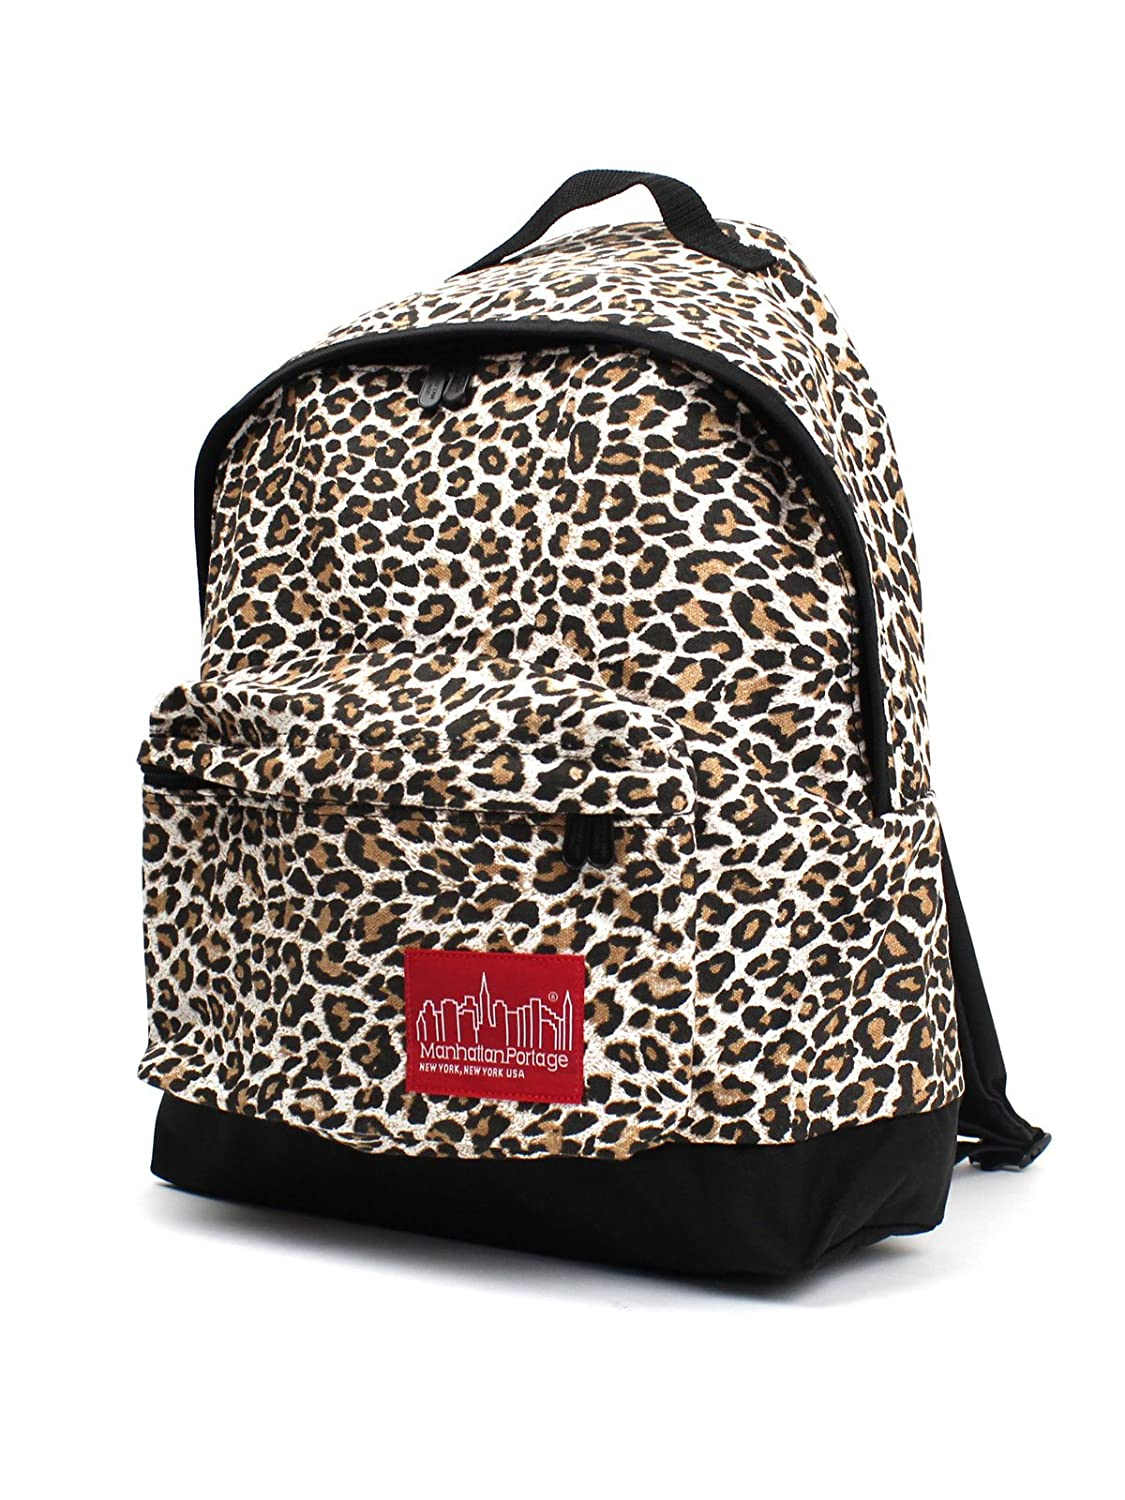 Amazon.co.jp: (マンハッタンポーテージ)ManhattanPortage Wild Cat Big Apple Backpack(M)MP1209WDC: シューズ&バッグ:通販